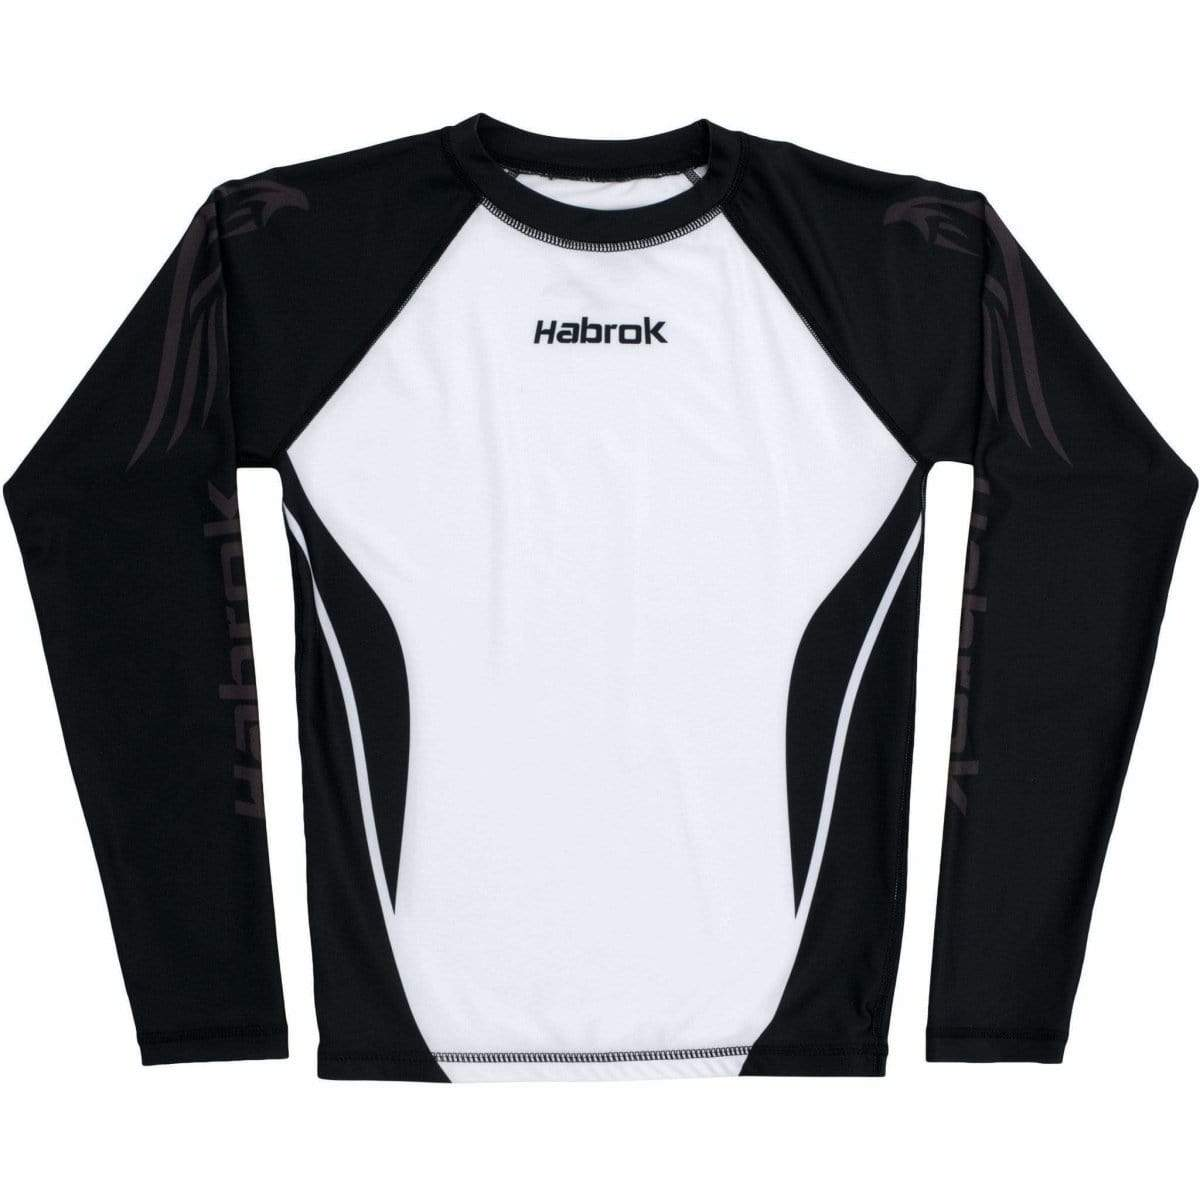 Habrok Rash Guard XS / Black Performance Rash Guard - Youth Habrok - Performance Rash Guard - Youth